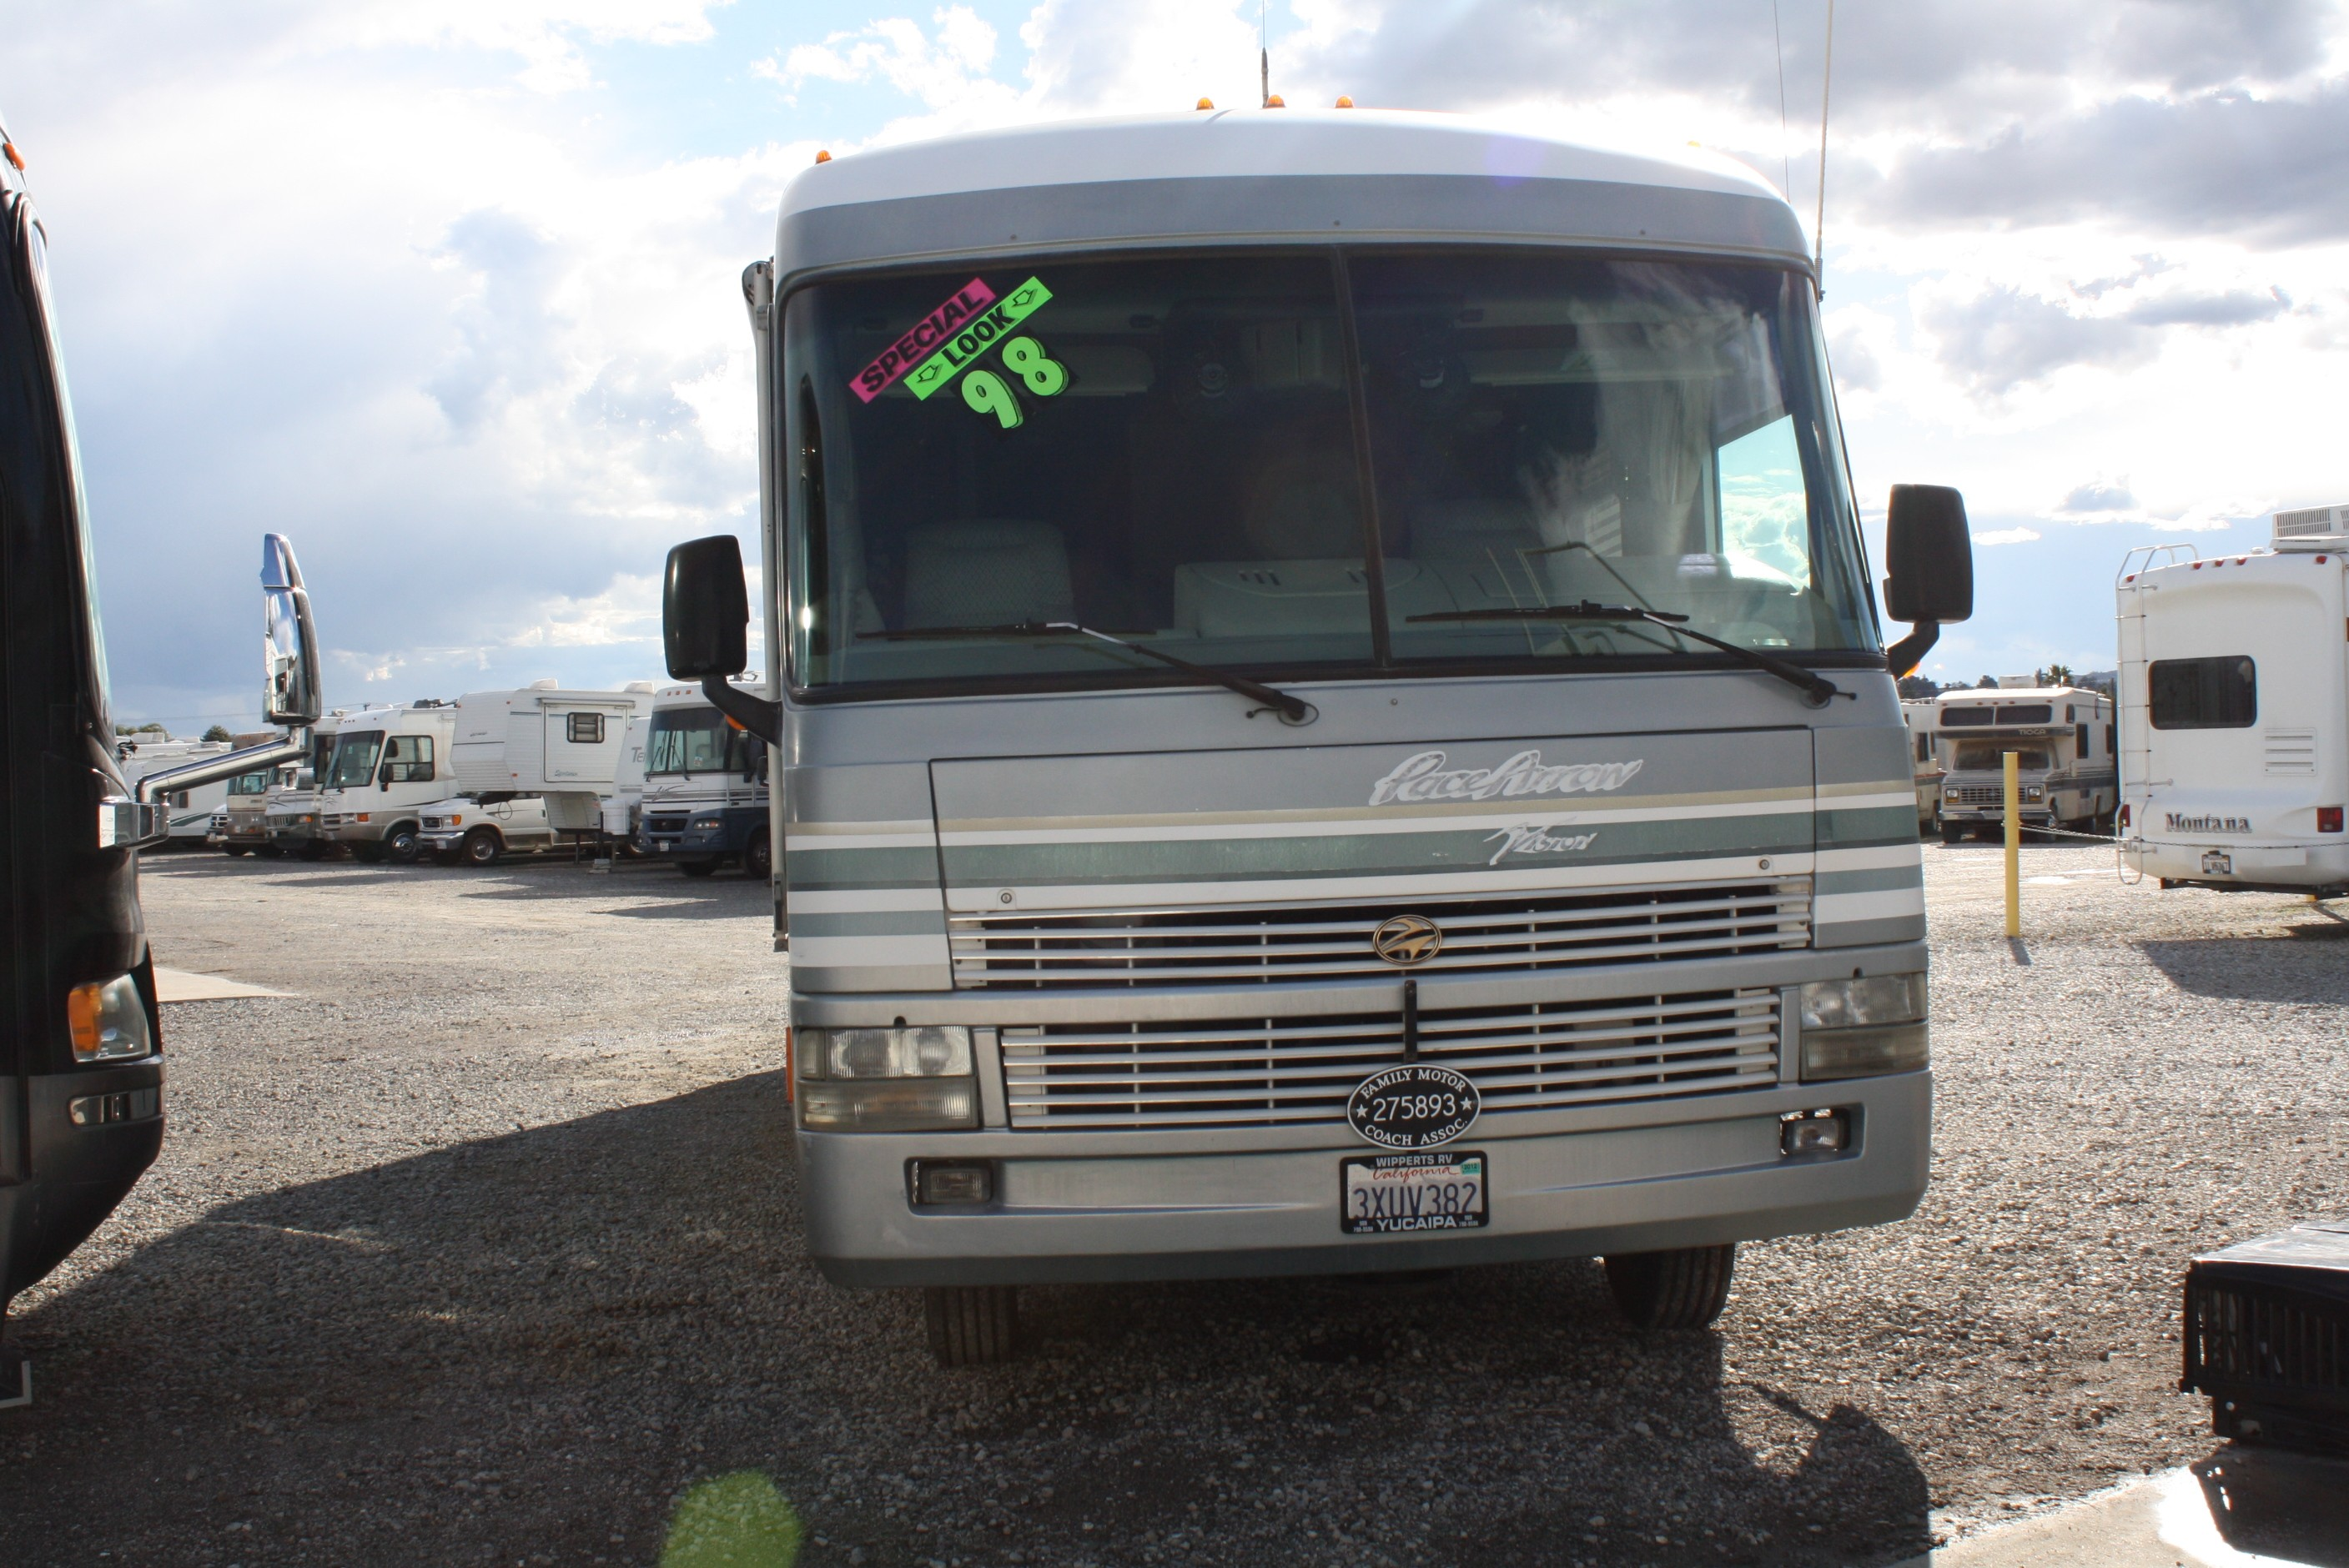 Used 1998 Fleetwood pace arrow vision 33 L in Yucaipa, CA